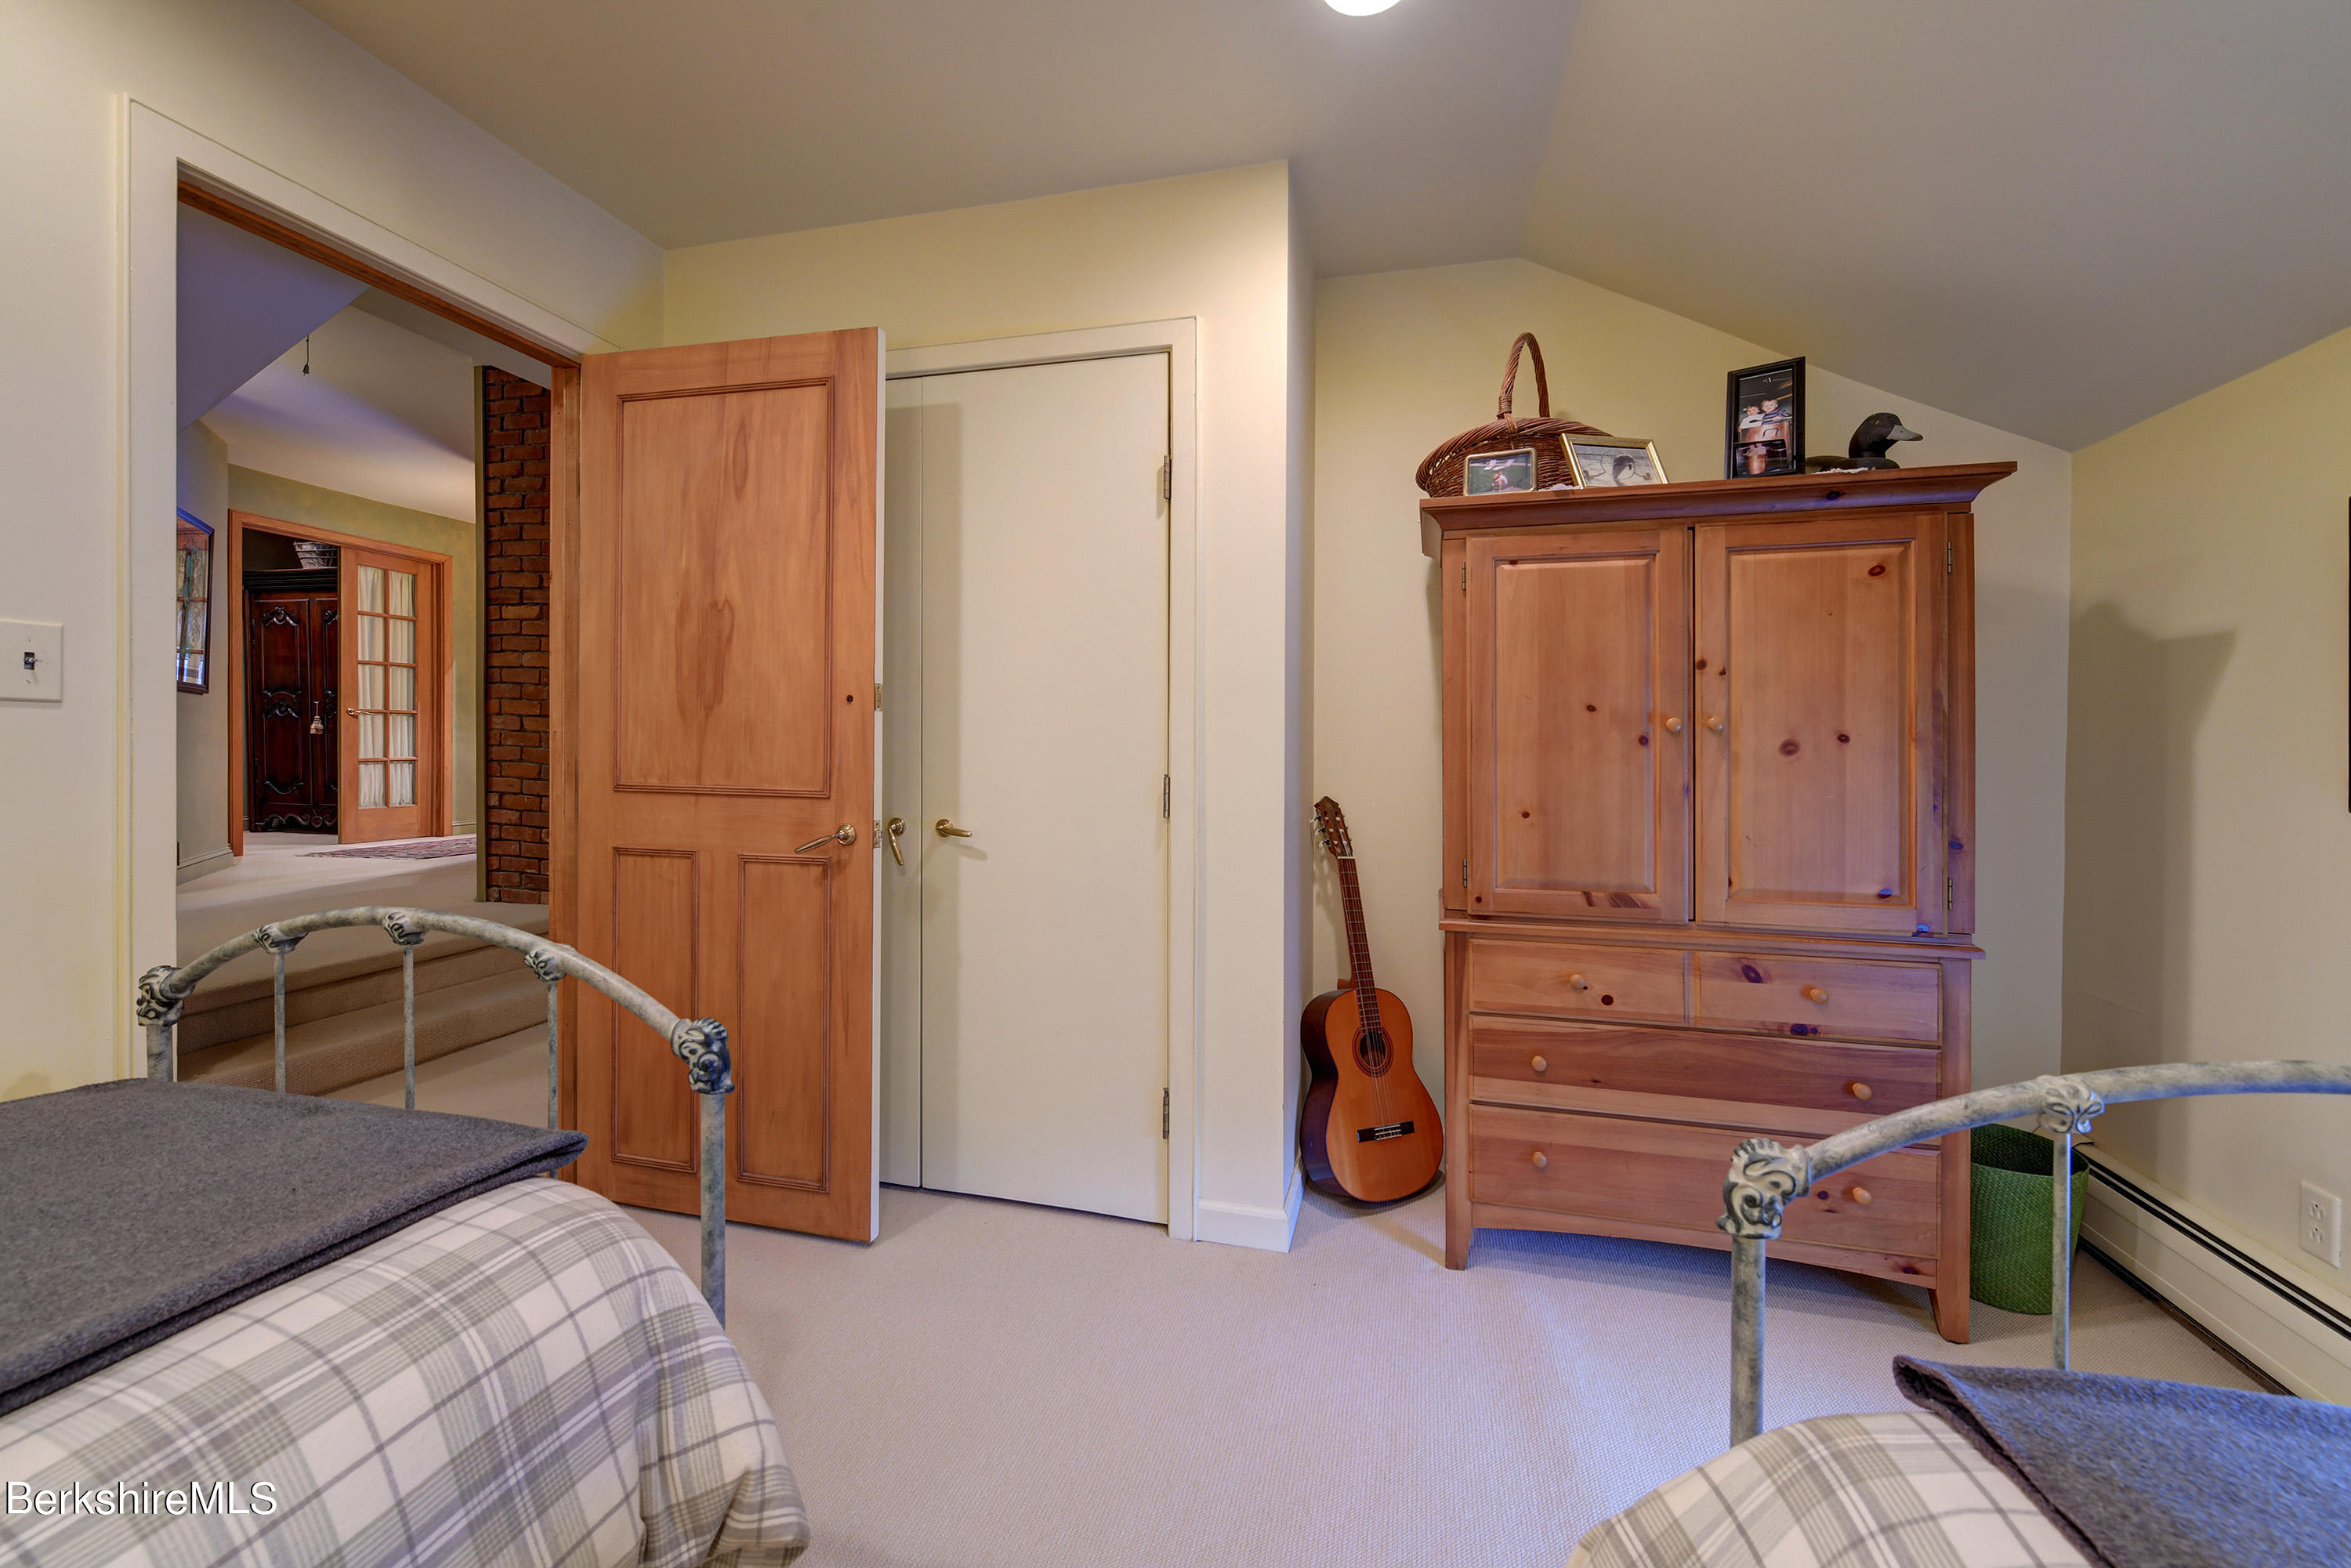 340-342 US-7, New Ashford, Massachusetts 01237, 4 Bedrooms Bedrooms, 10 Rooms Rooms,2 BathroomsBathrooms,Residential,For Sale,US-7,233270